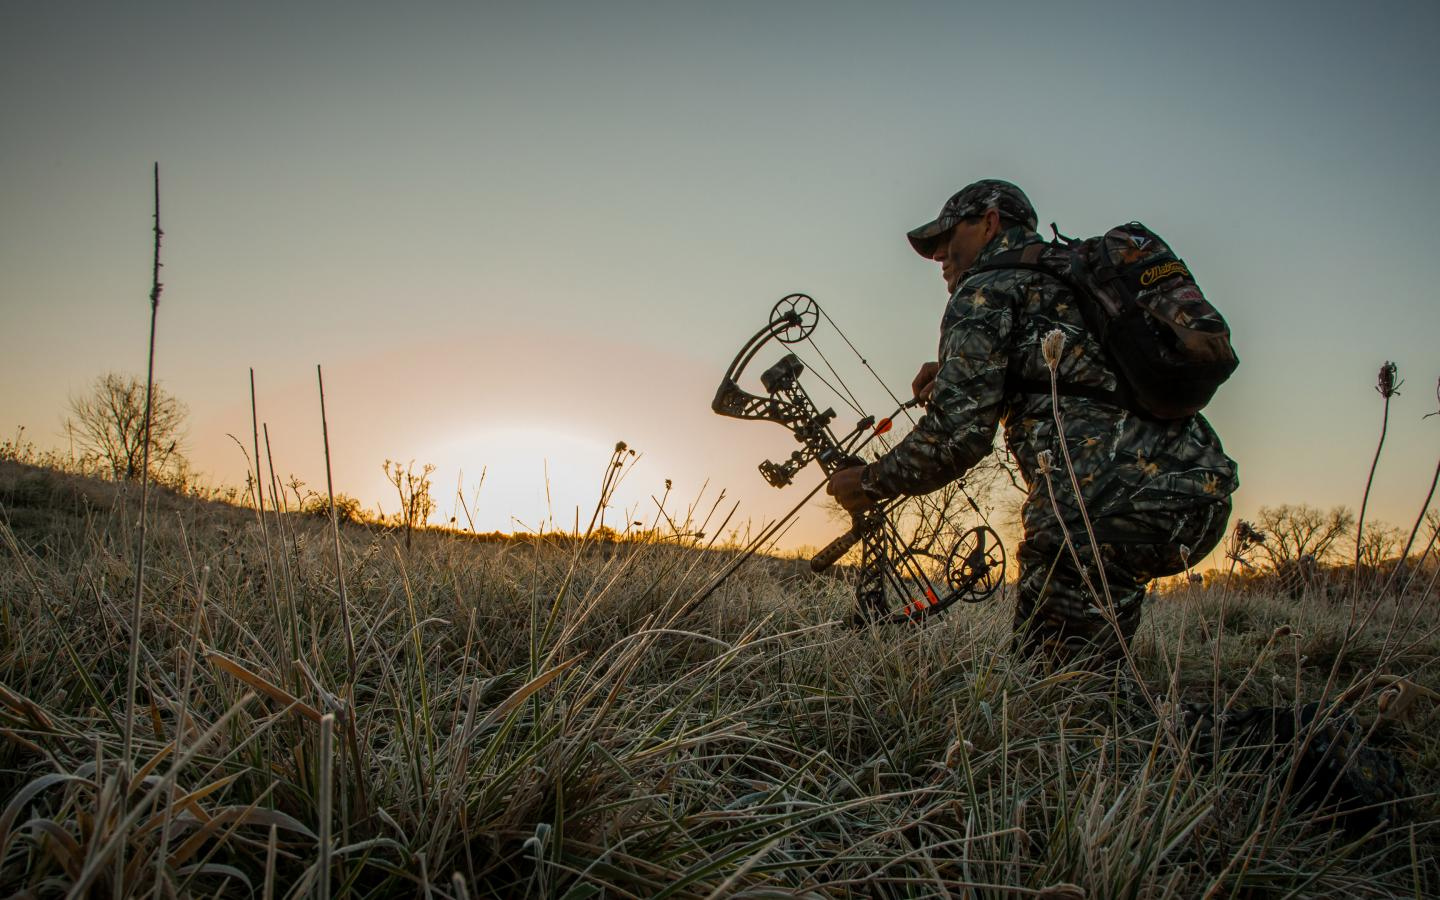 Badass Hunting Wallpaper With Hoyt Bow Hd Wallpapers